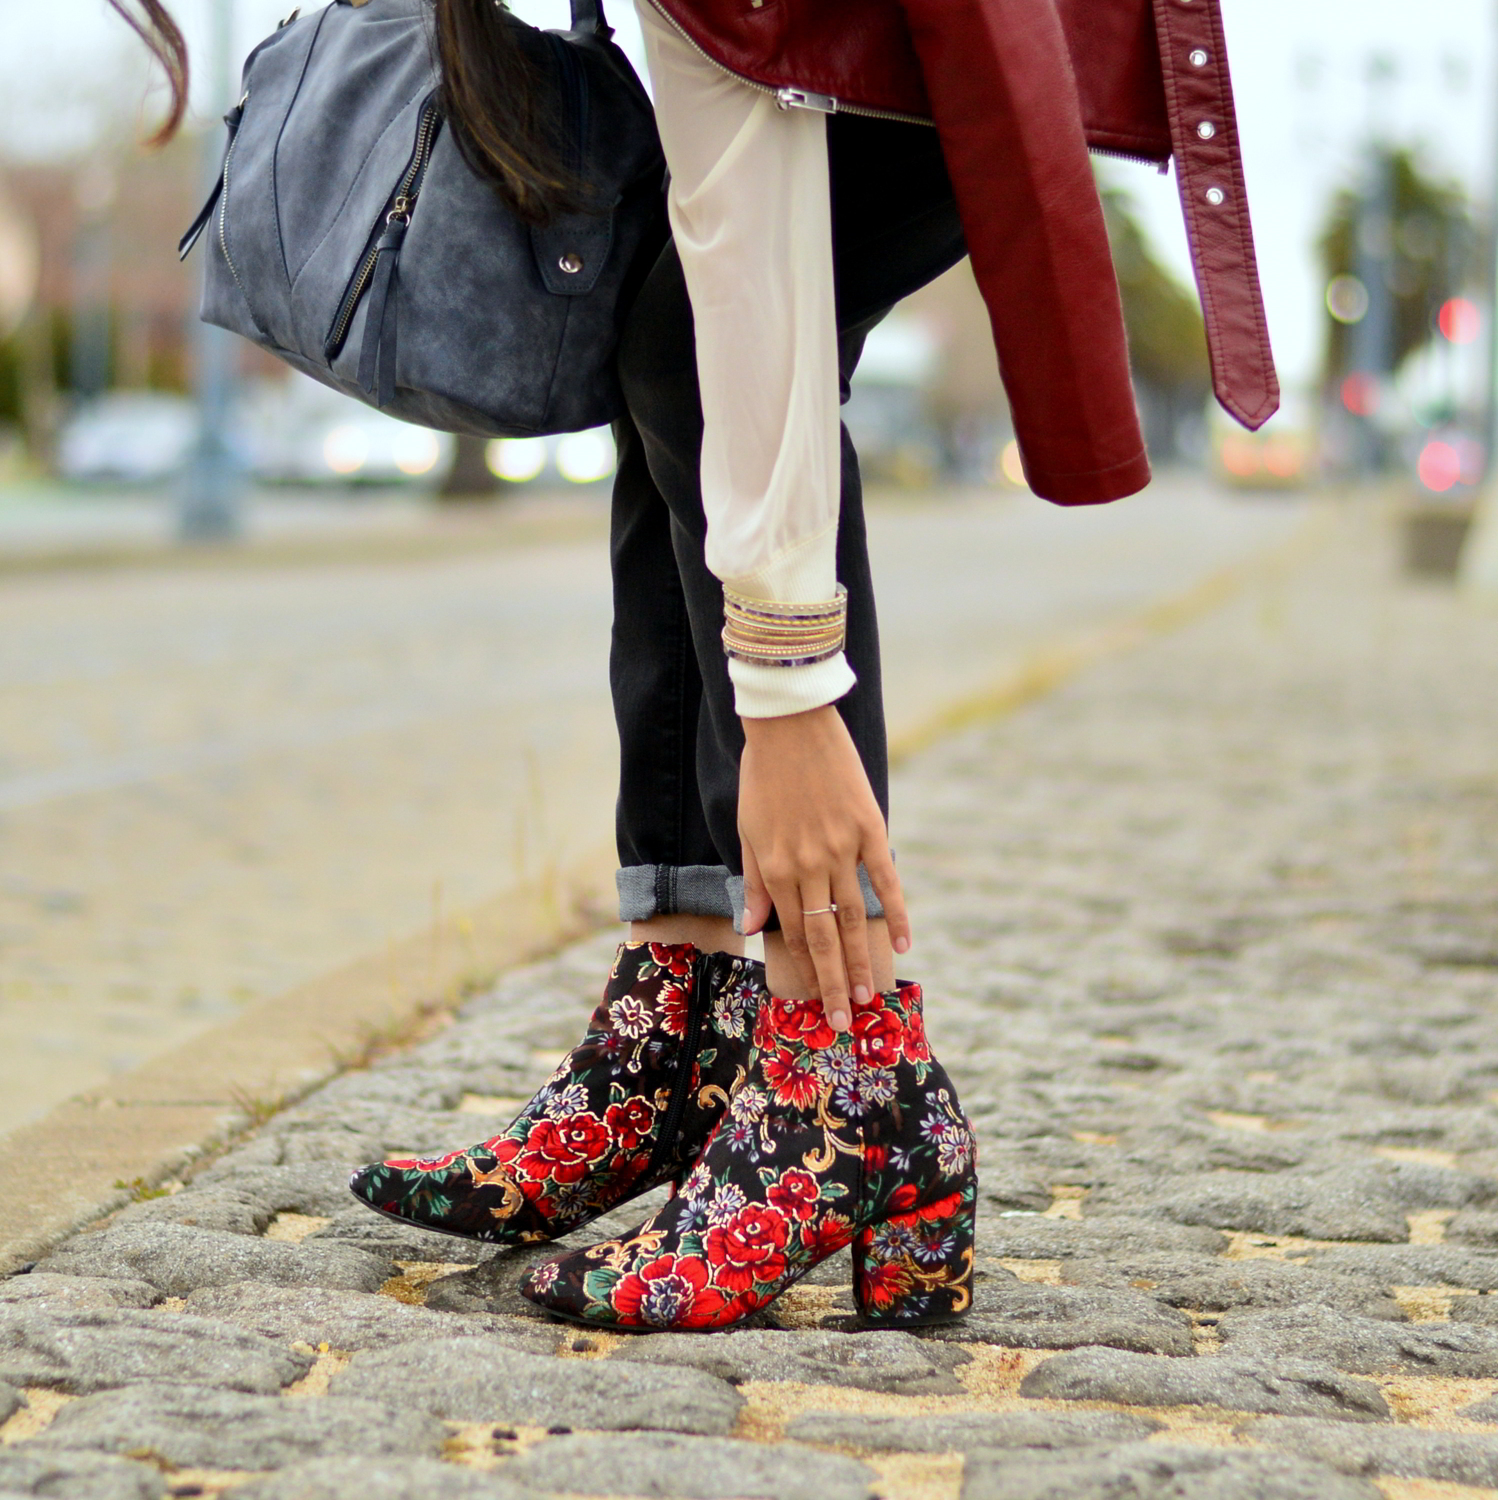 spring-layers-basics-san-francisco-floral-velvet-boots-blogger-statement-accessories 7